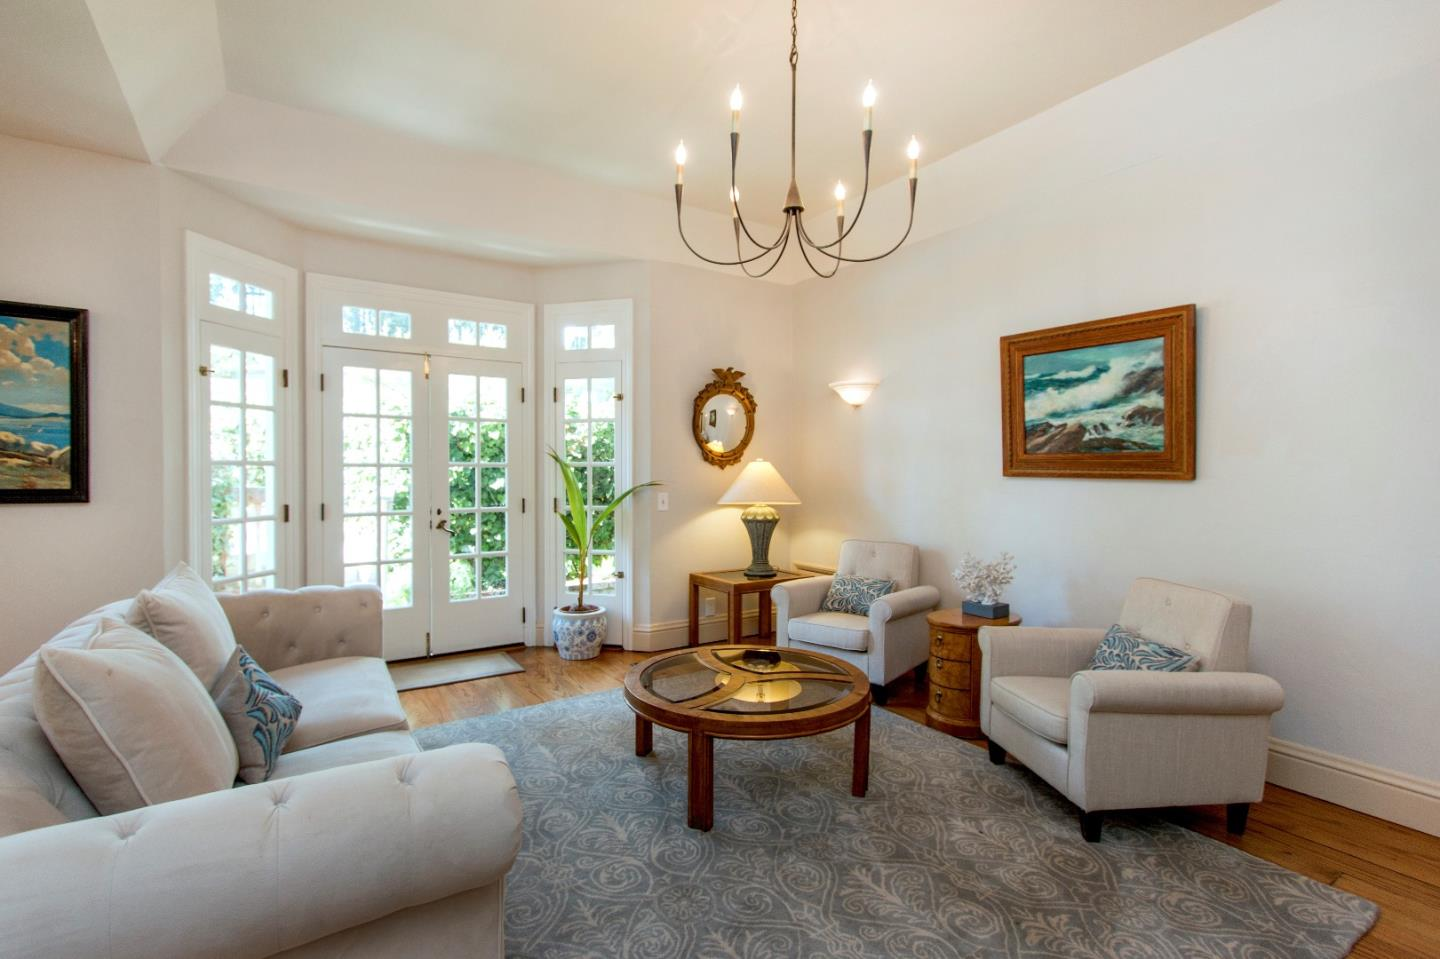 Additional photo for property listing at 1284 Portola Rd  PEBBLE BEACH, CALIFORNIA 93953